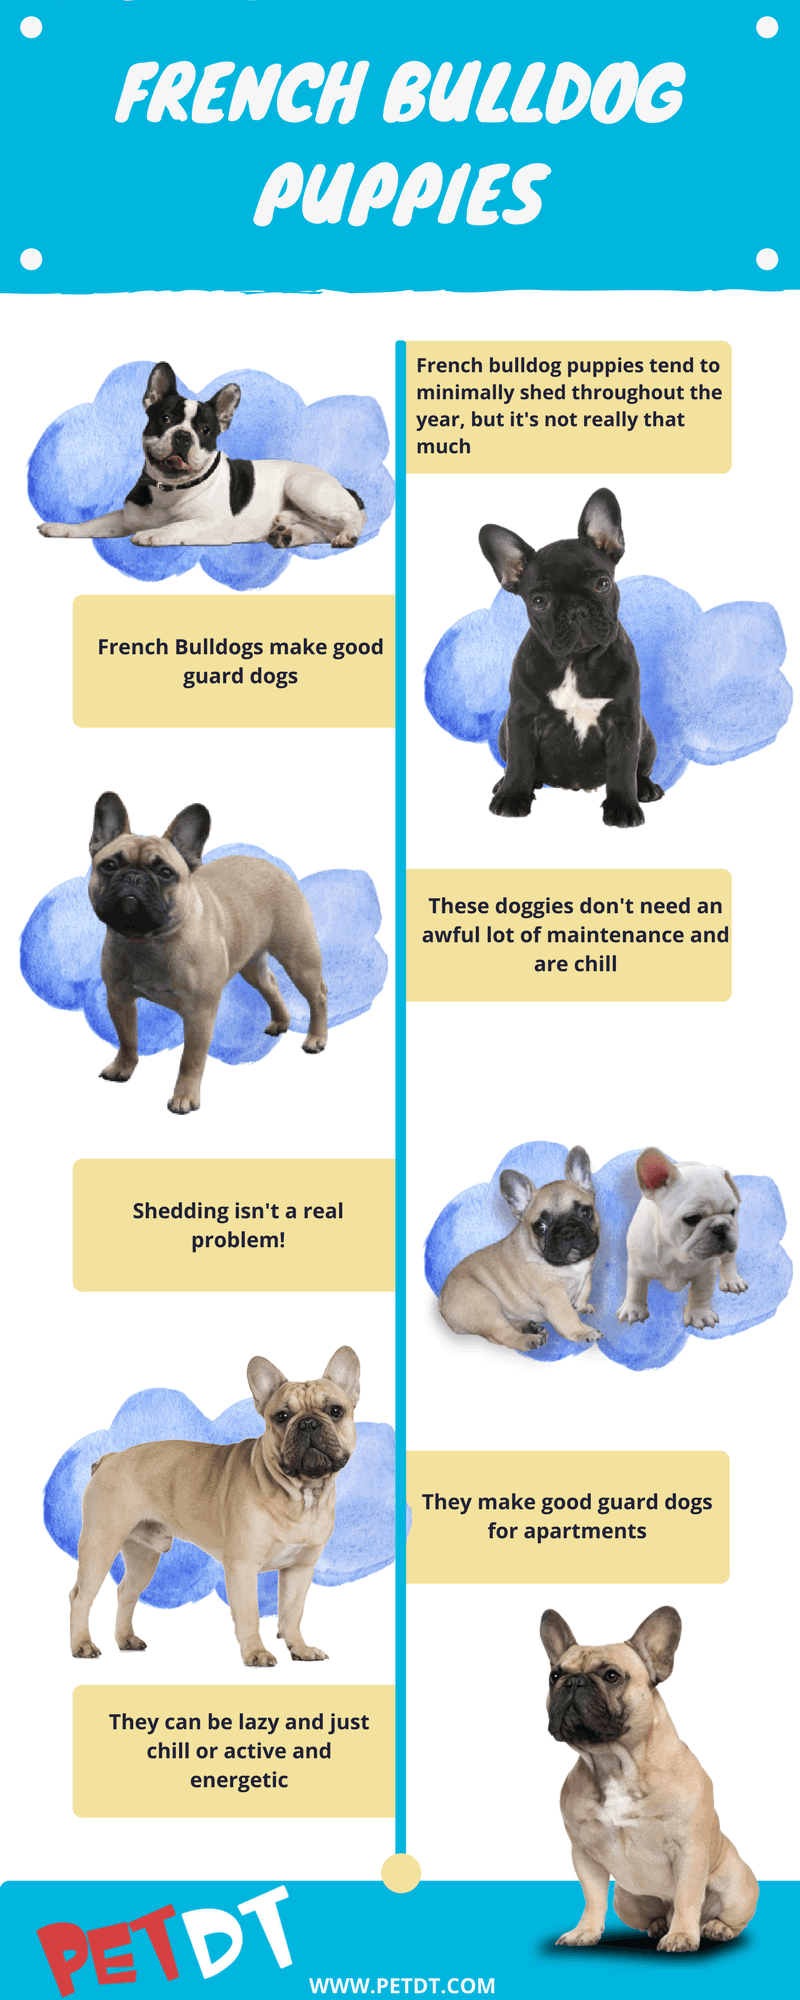 Everything you need to know about french bulldog puppies petdt a french bulldog puppies and all about their size nvjuhfo Choice Image